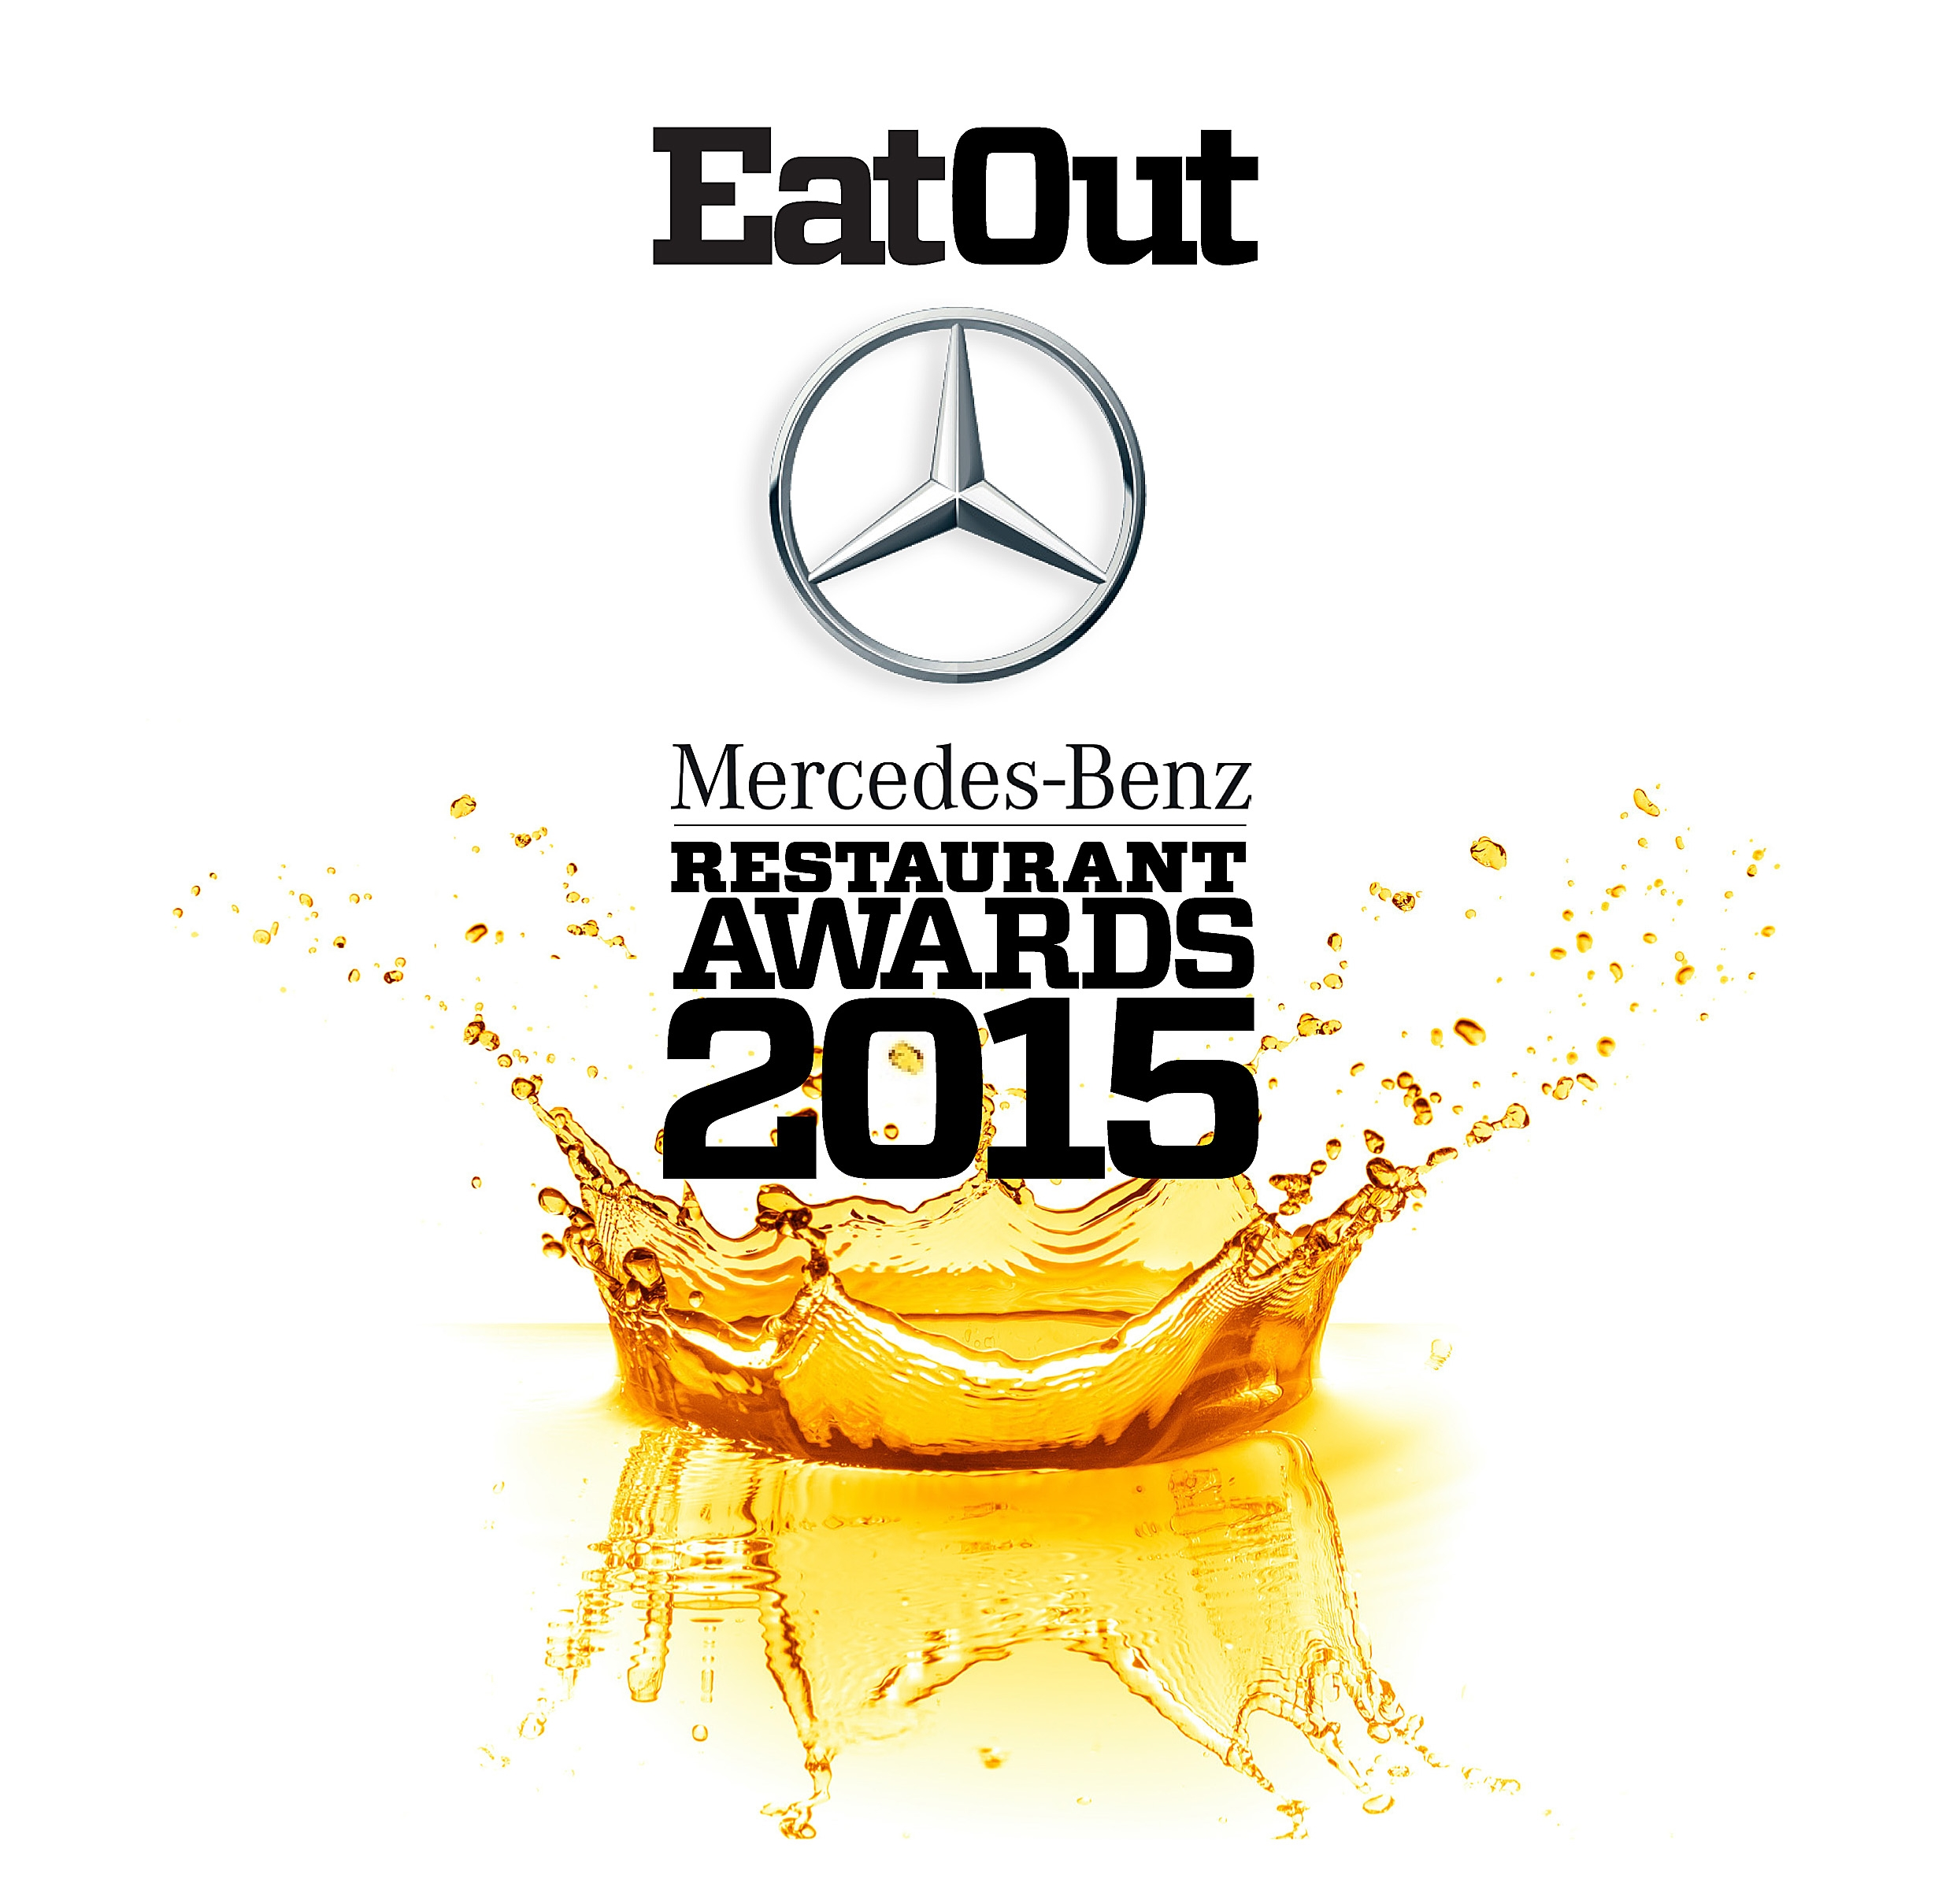 Eat Out Mercedes Benz Restaurant Awards 2015